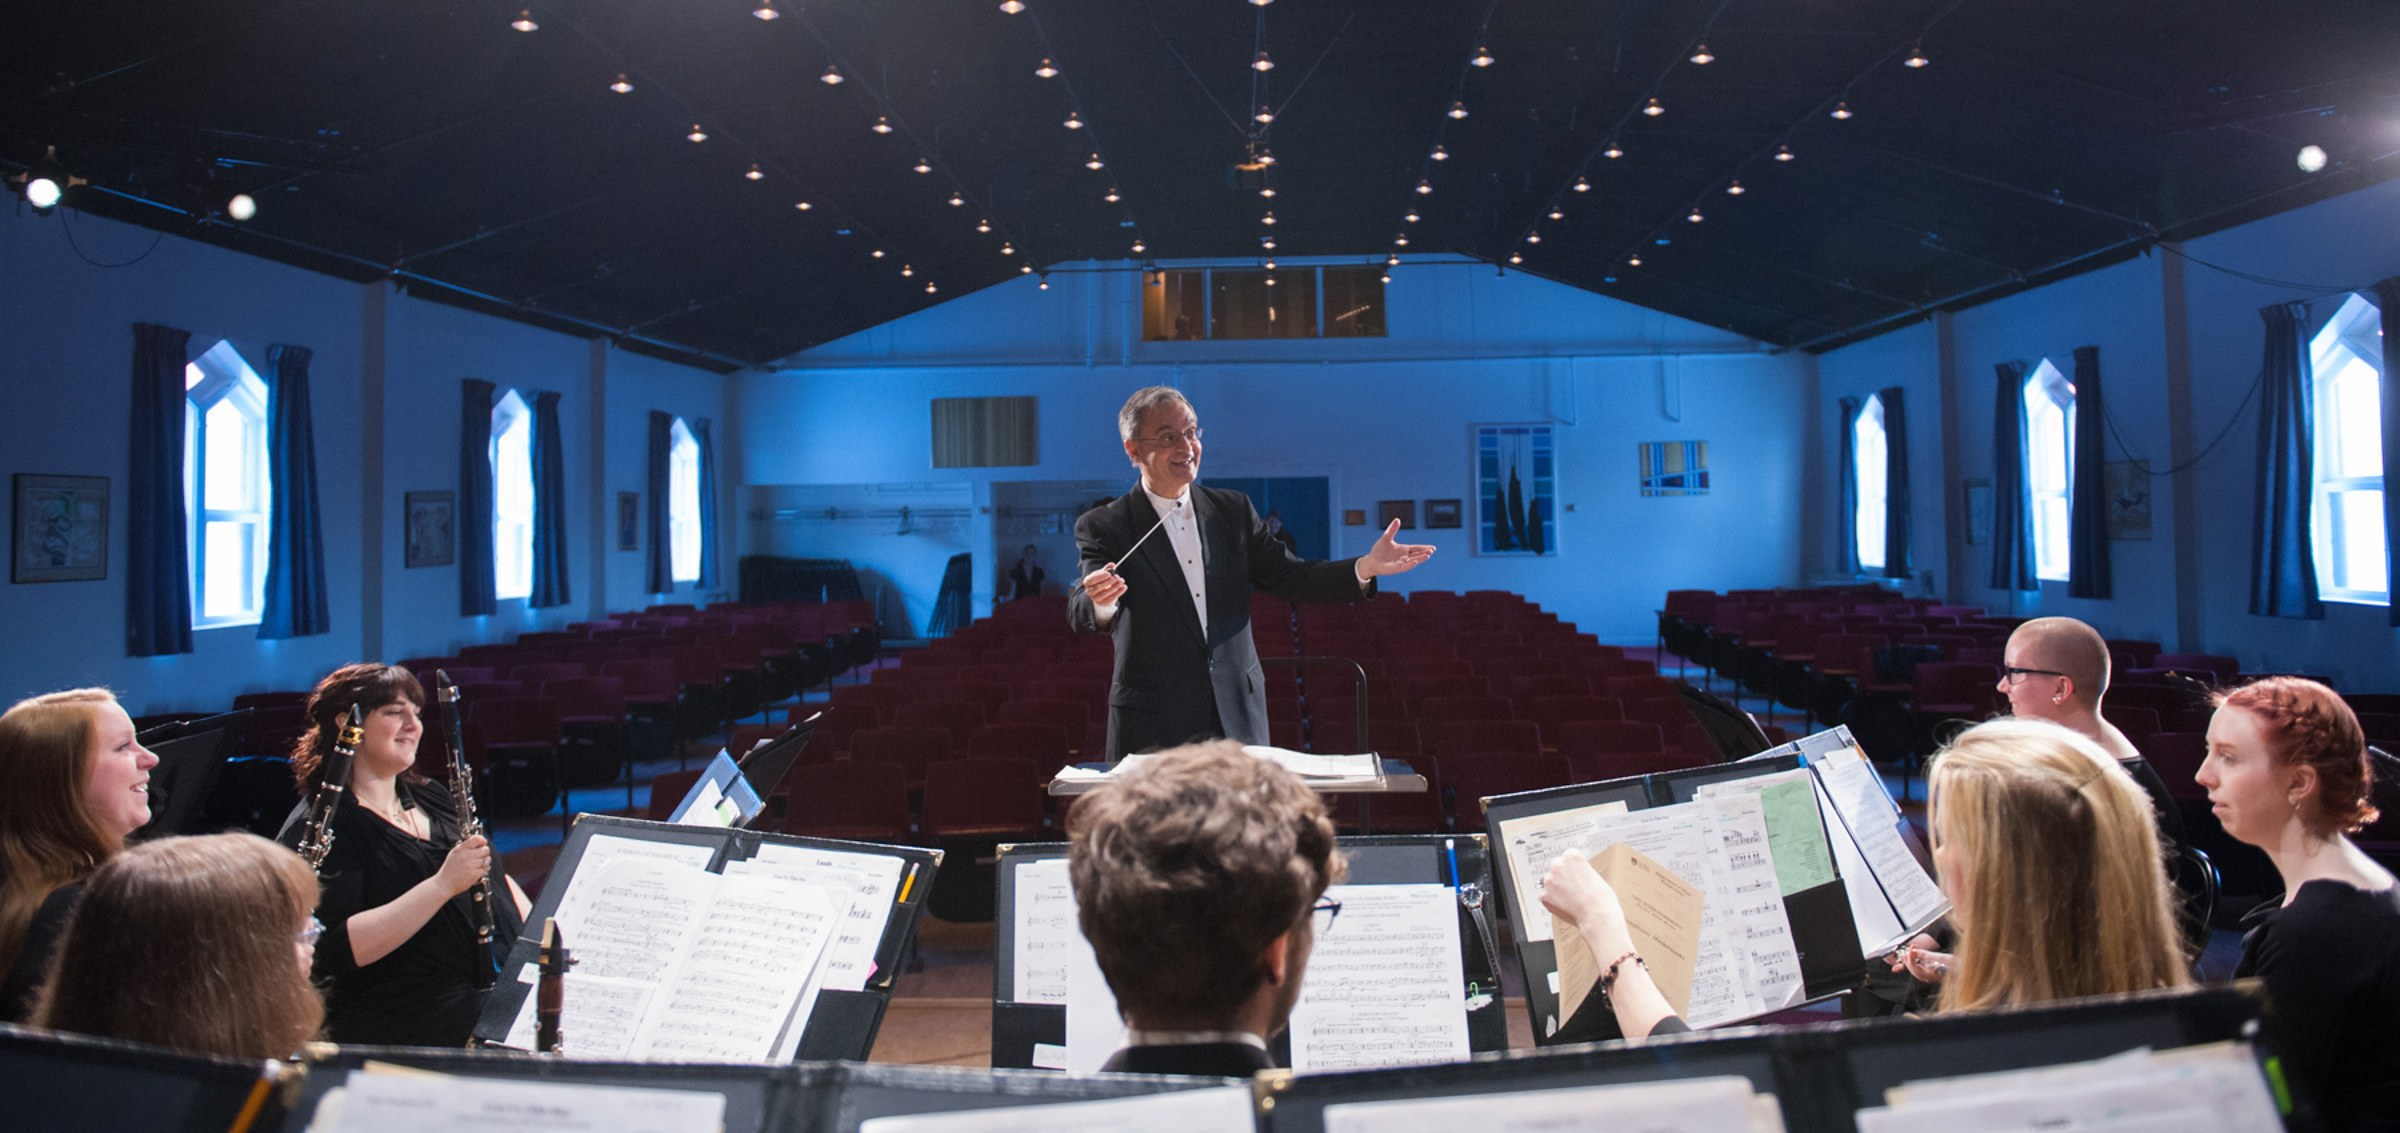 A conductor stands in front of a symphony